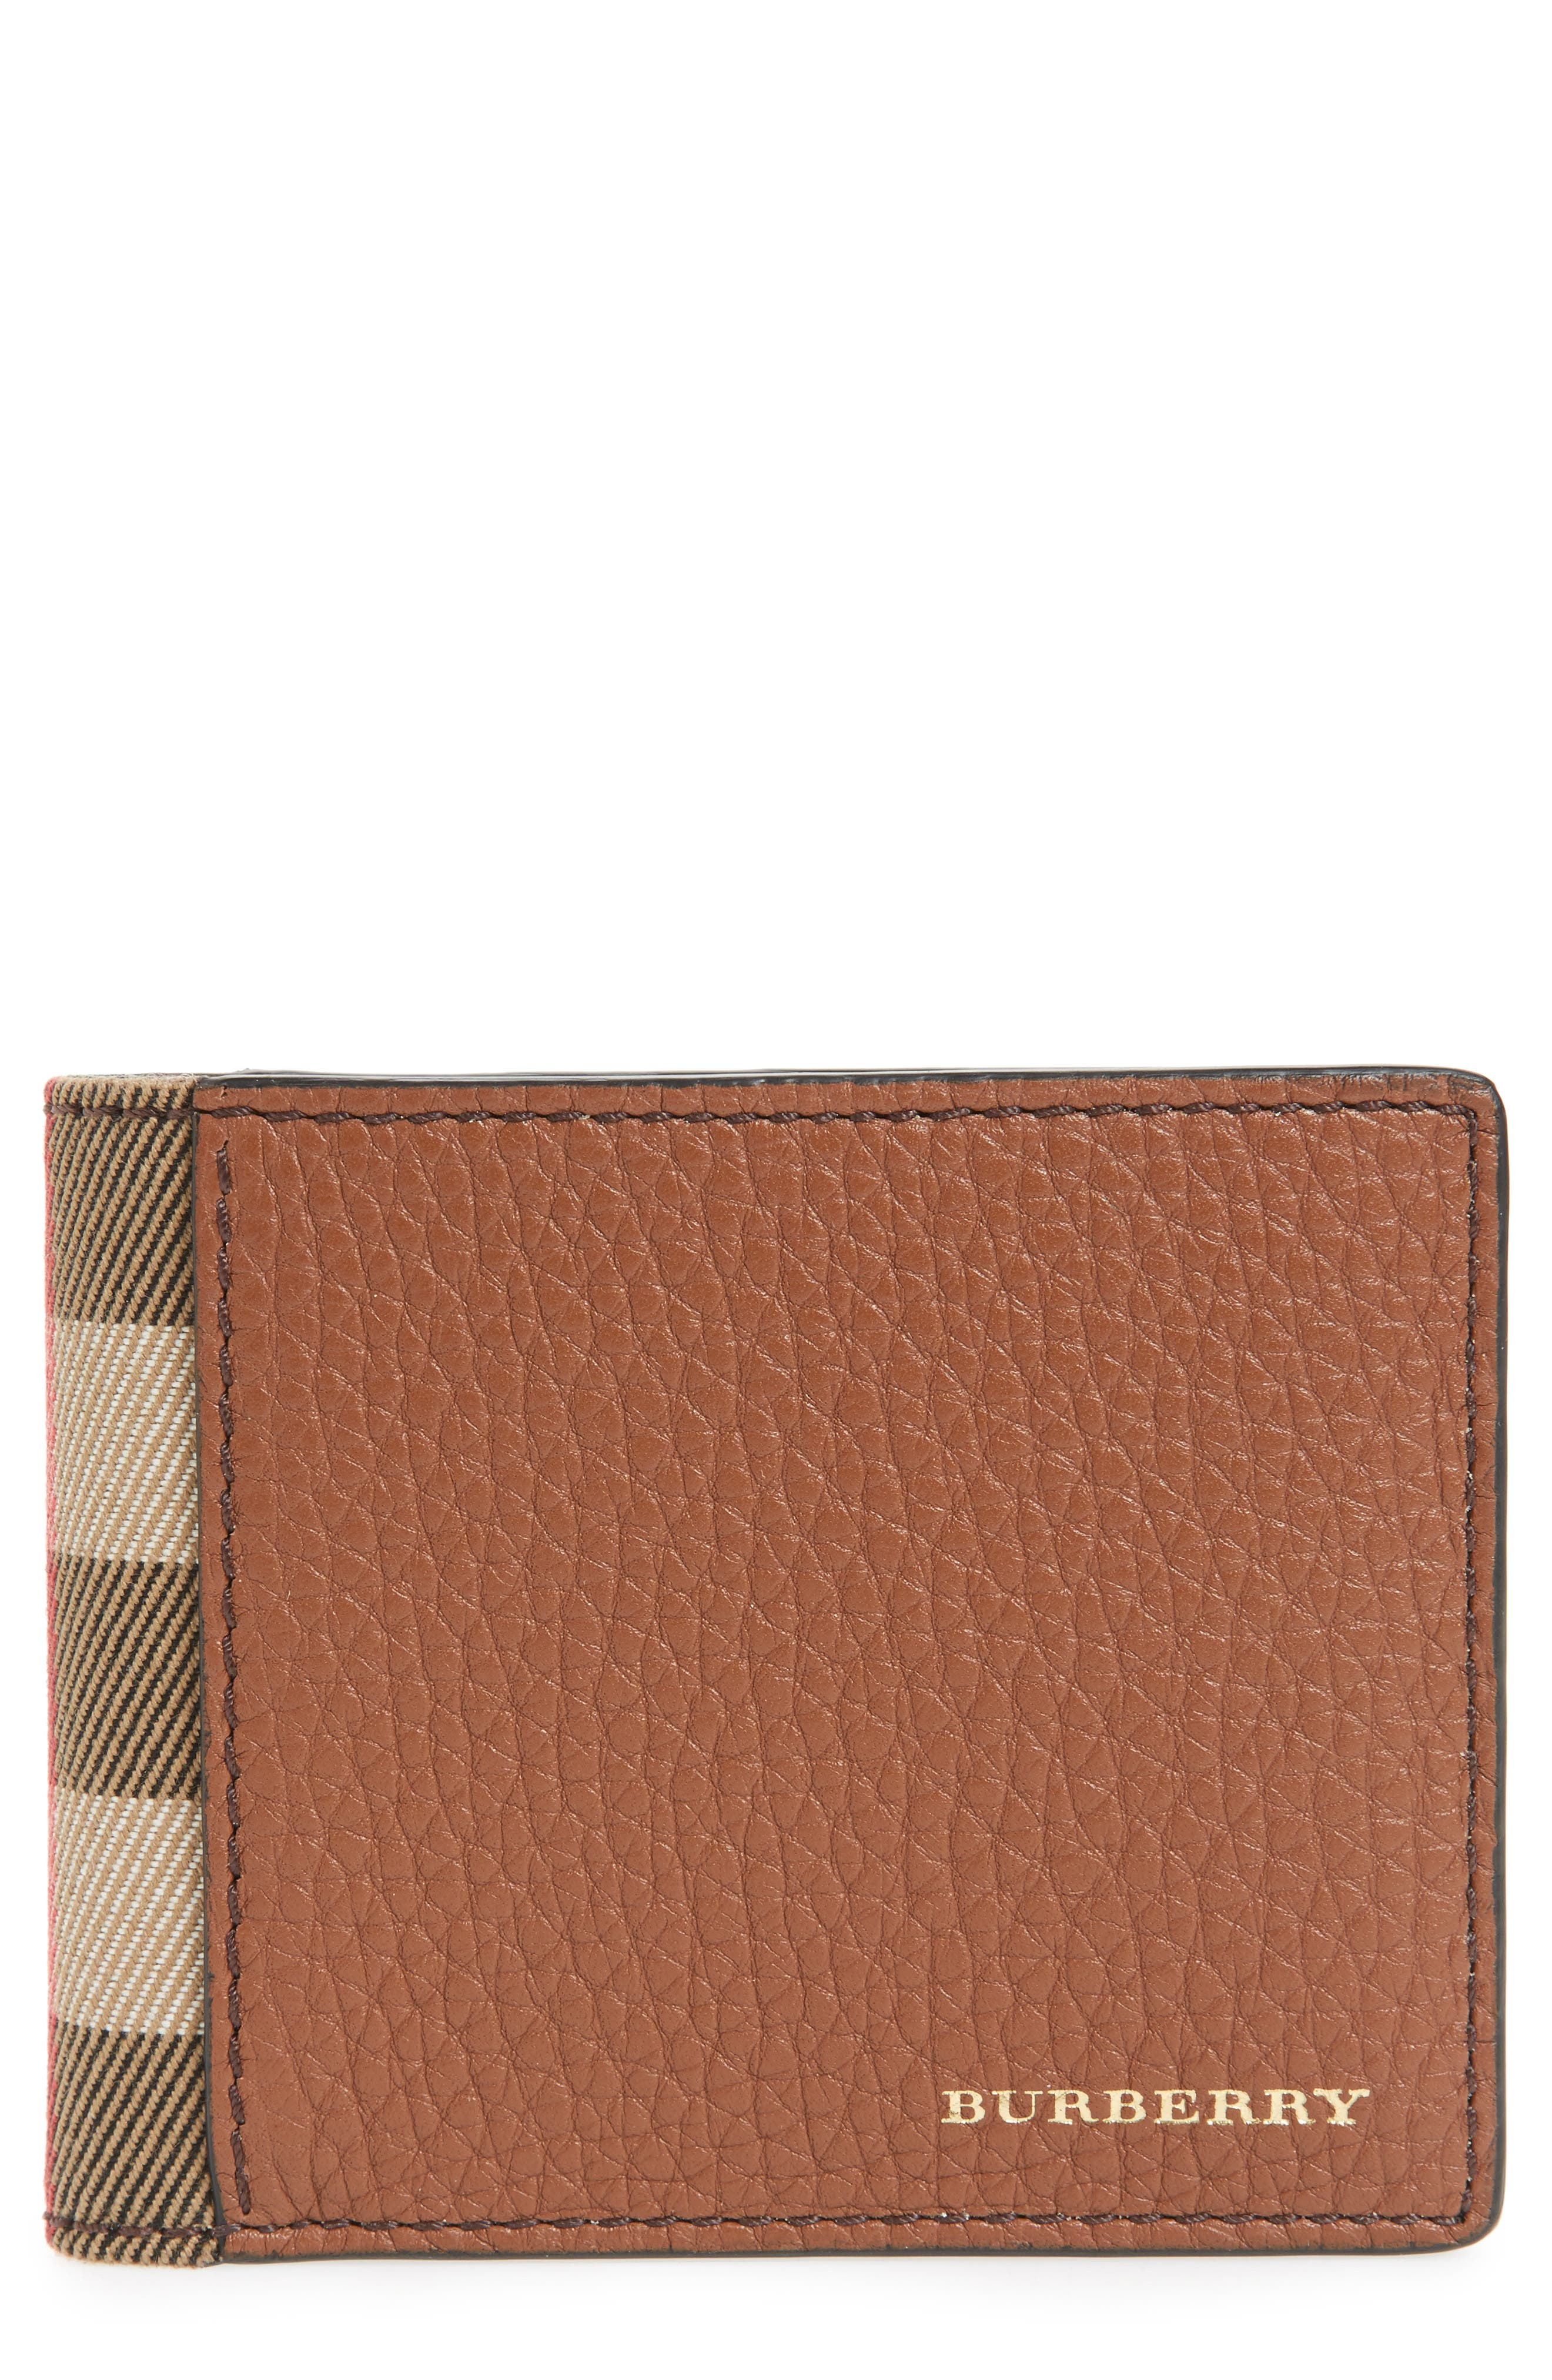 Main Image - Burberry Leather Wallet